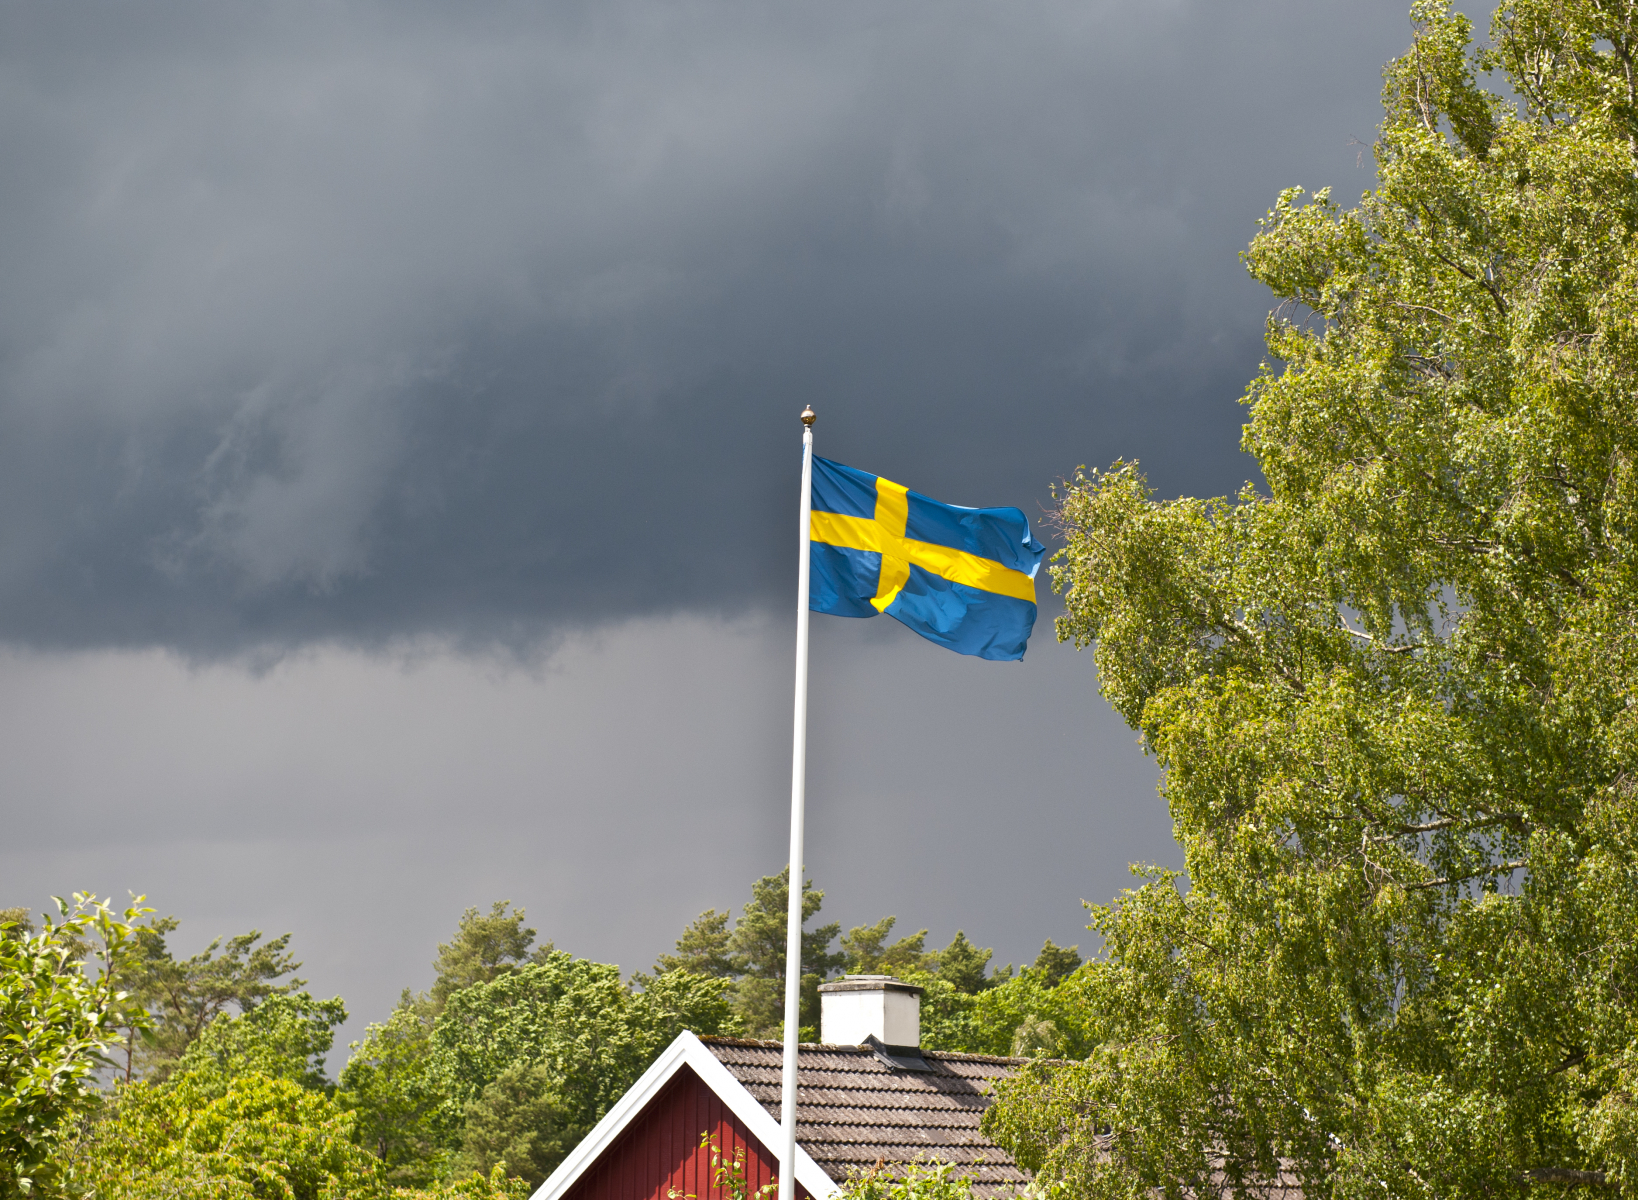 3325672-rainy-swedish-summer